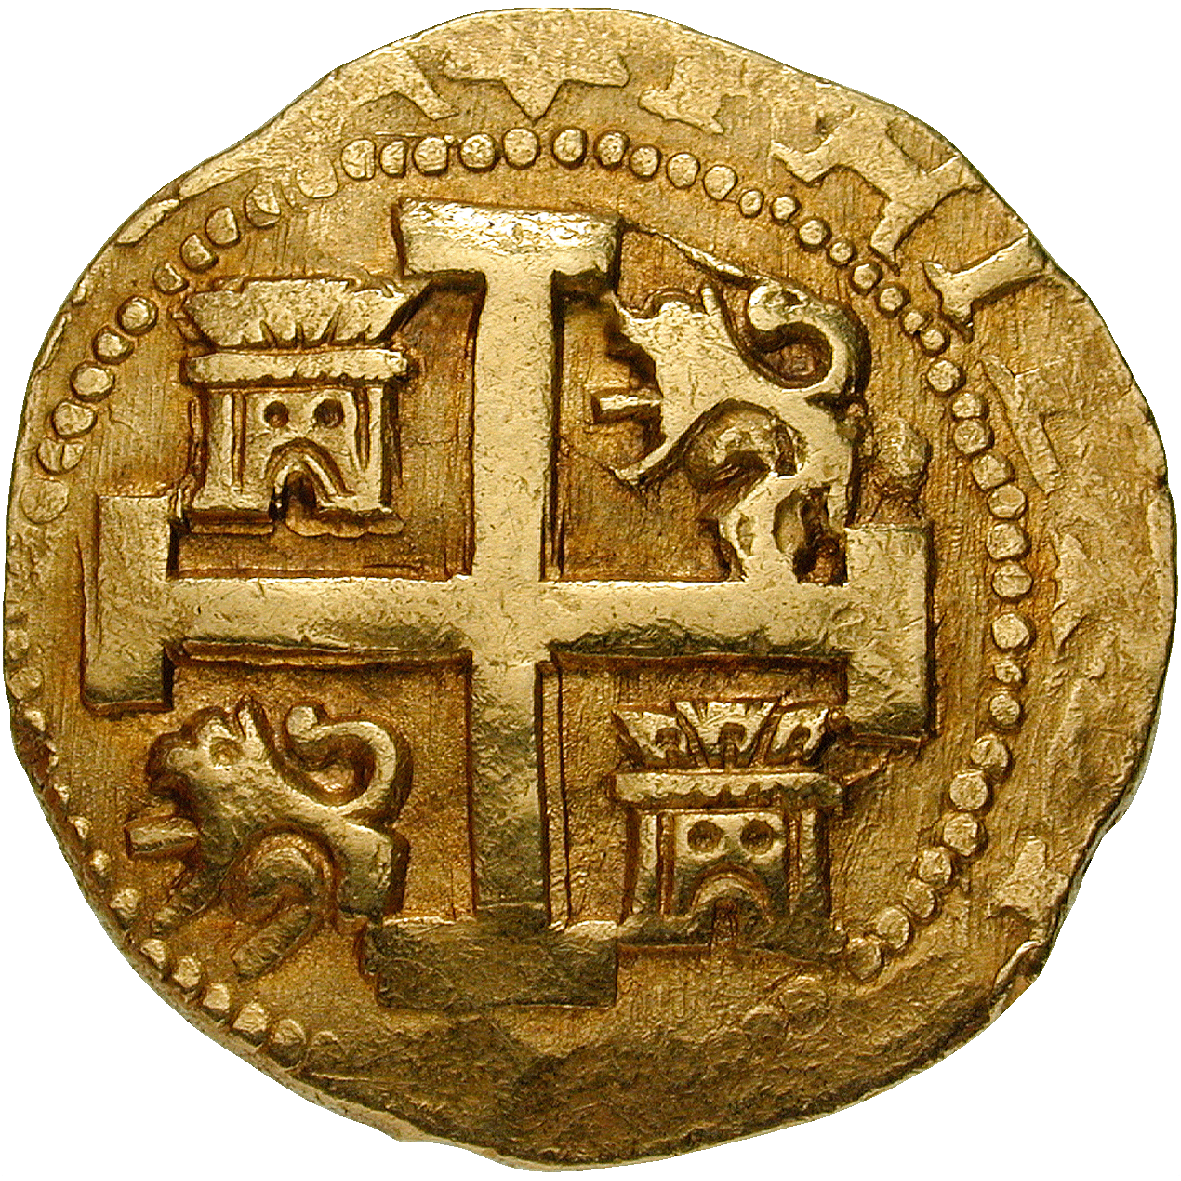 Viceroyalty of New Spain, Philip V, Doubloon of 8 Escudos (Onza) (obverse)